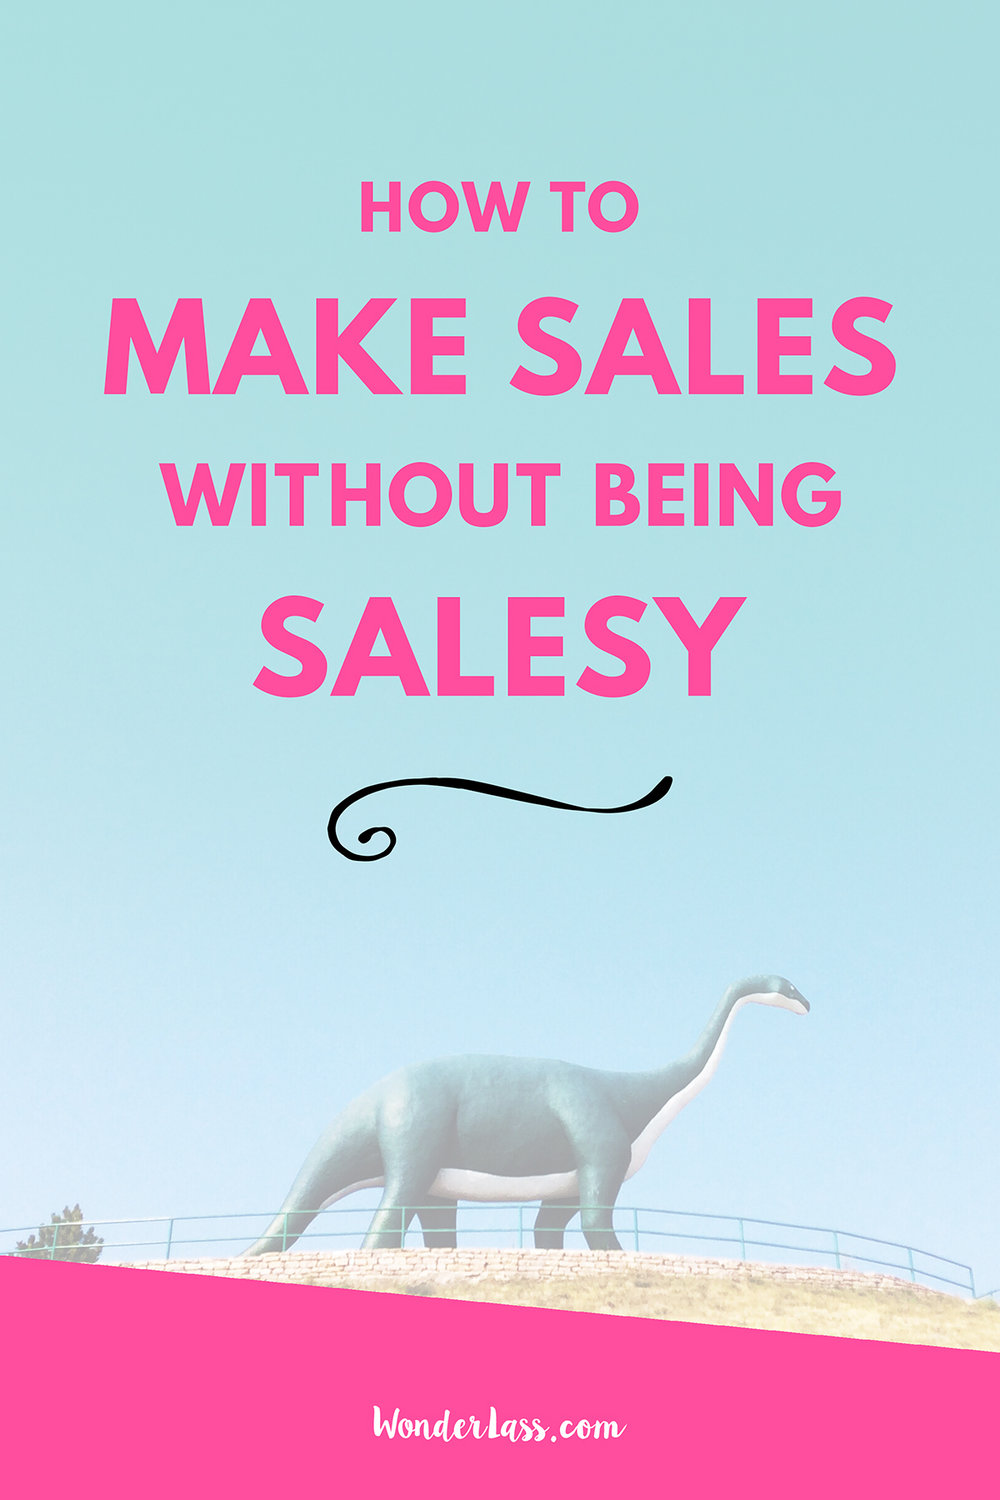 How to Make Sales Without Being Salesy | want to make more sales in your business but are terrified of being salesy? Then this post is for you!